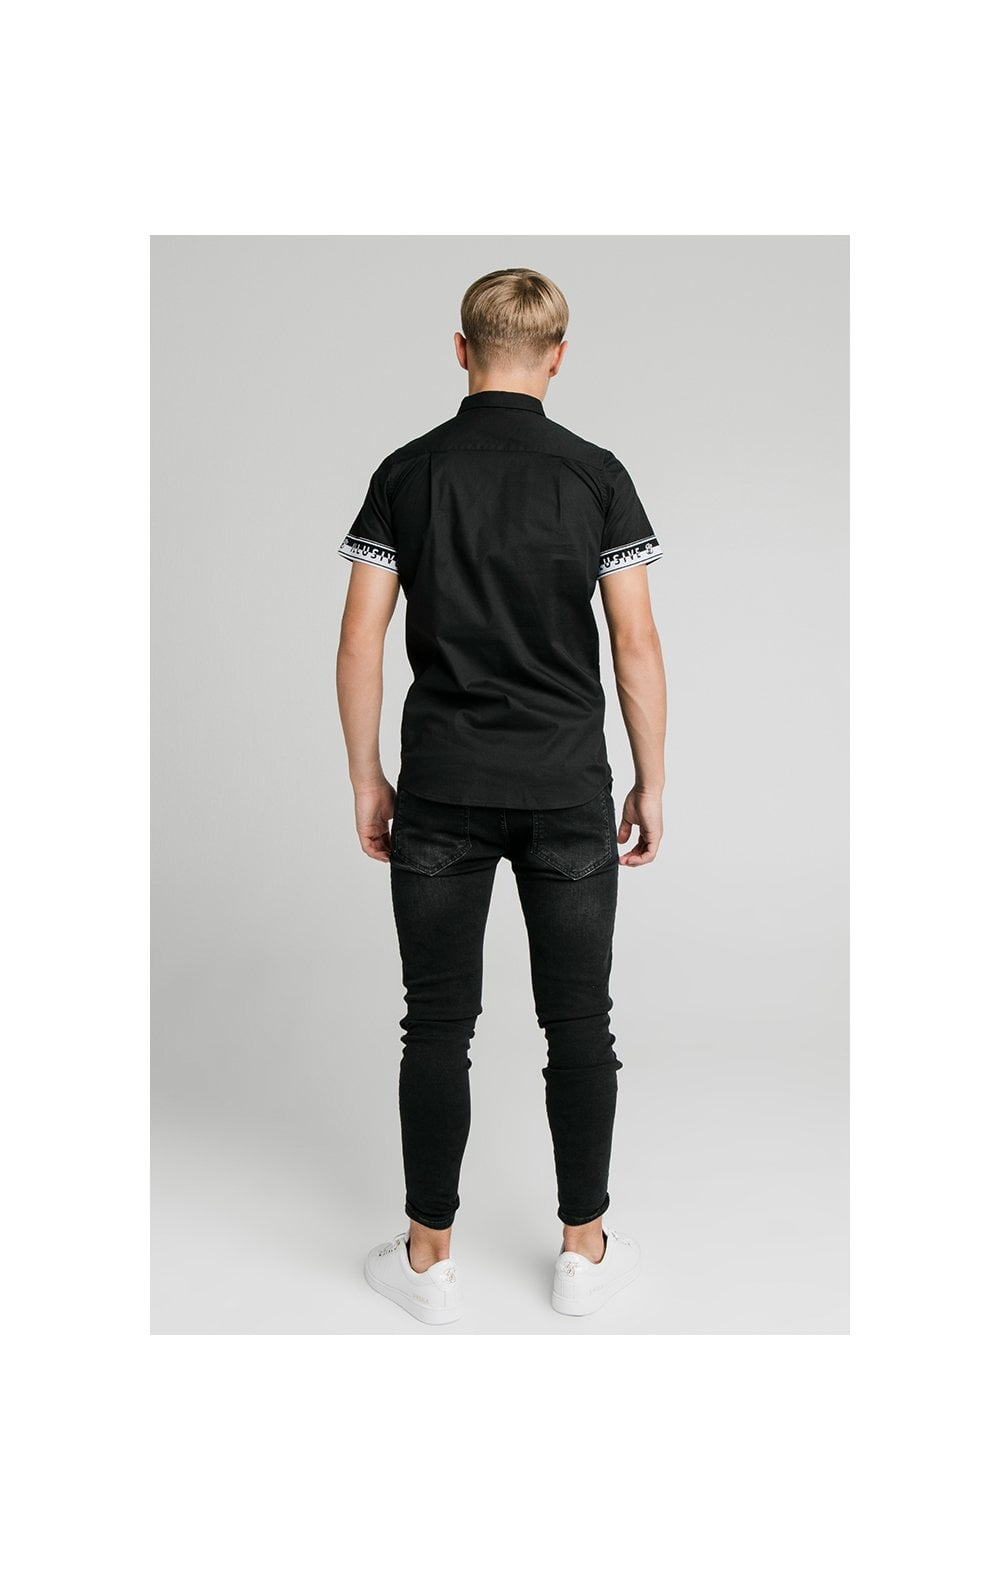 Illusive London Contrast Tape S/S Shirt - Black (4)